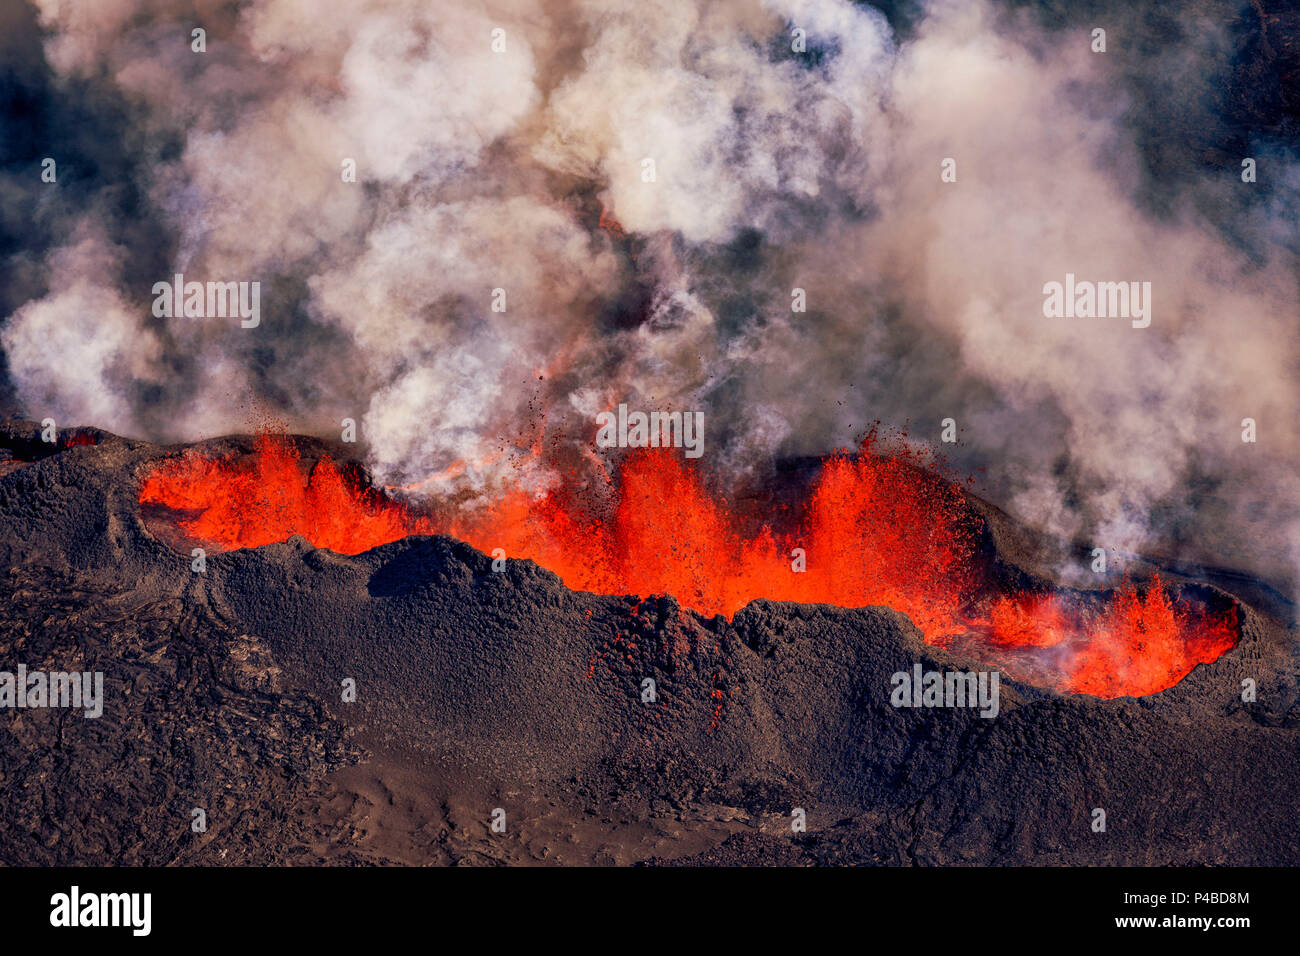 Volcano eruption at the Holuhraun Fissure near the Bardarbunga Volcano, Iceland. August 29, 2014, a fissure eruption started in Holuhraun at the northern end of a magma intrusion which had moved progressively north, from the Bardarbunga volcano. Picture date Sept 3, 2014. - Stock Image